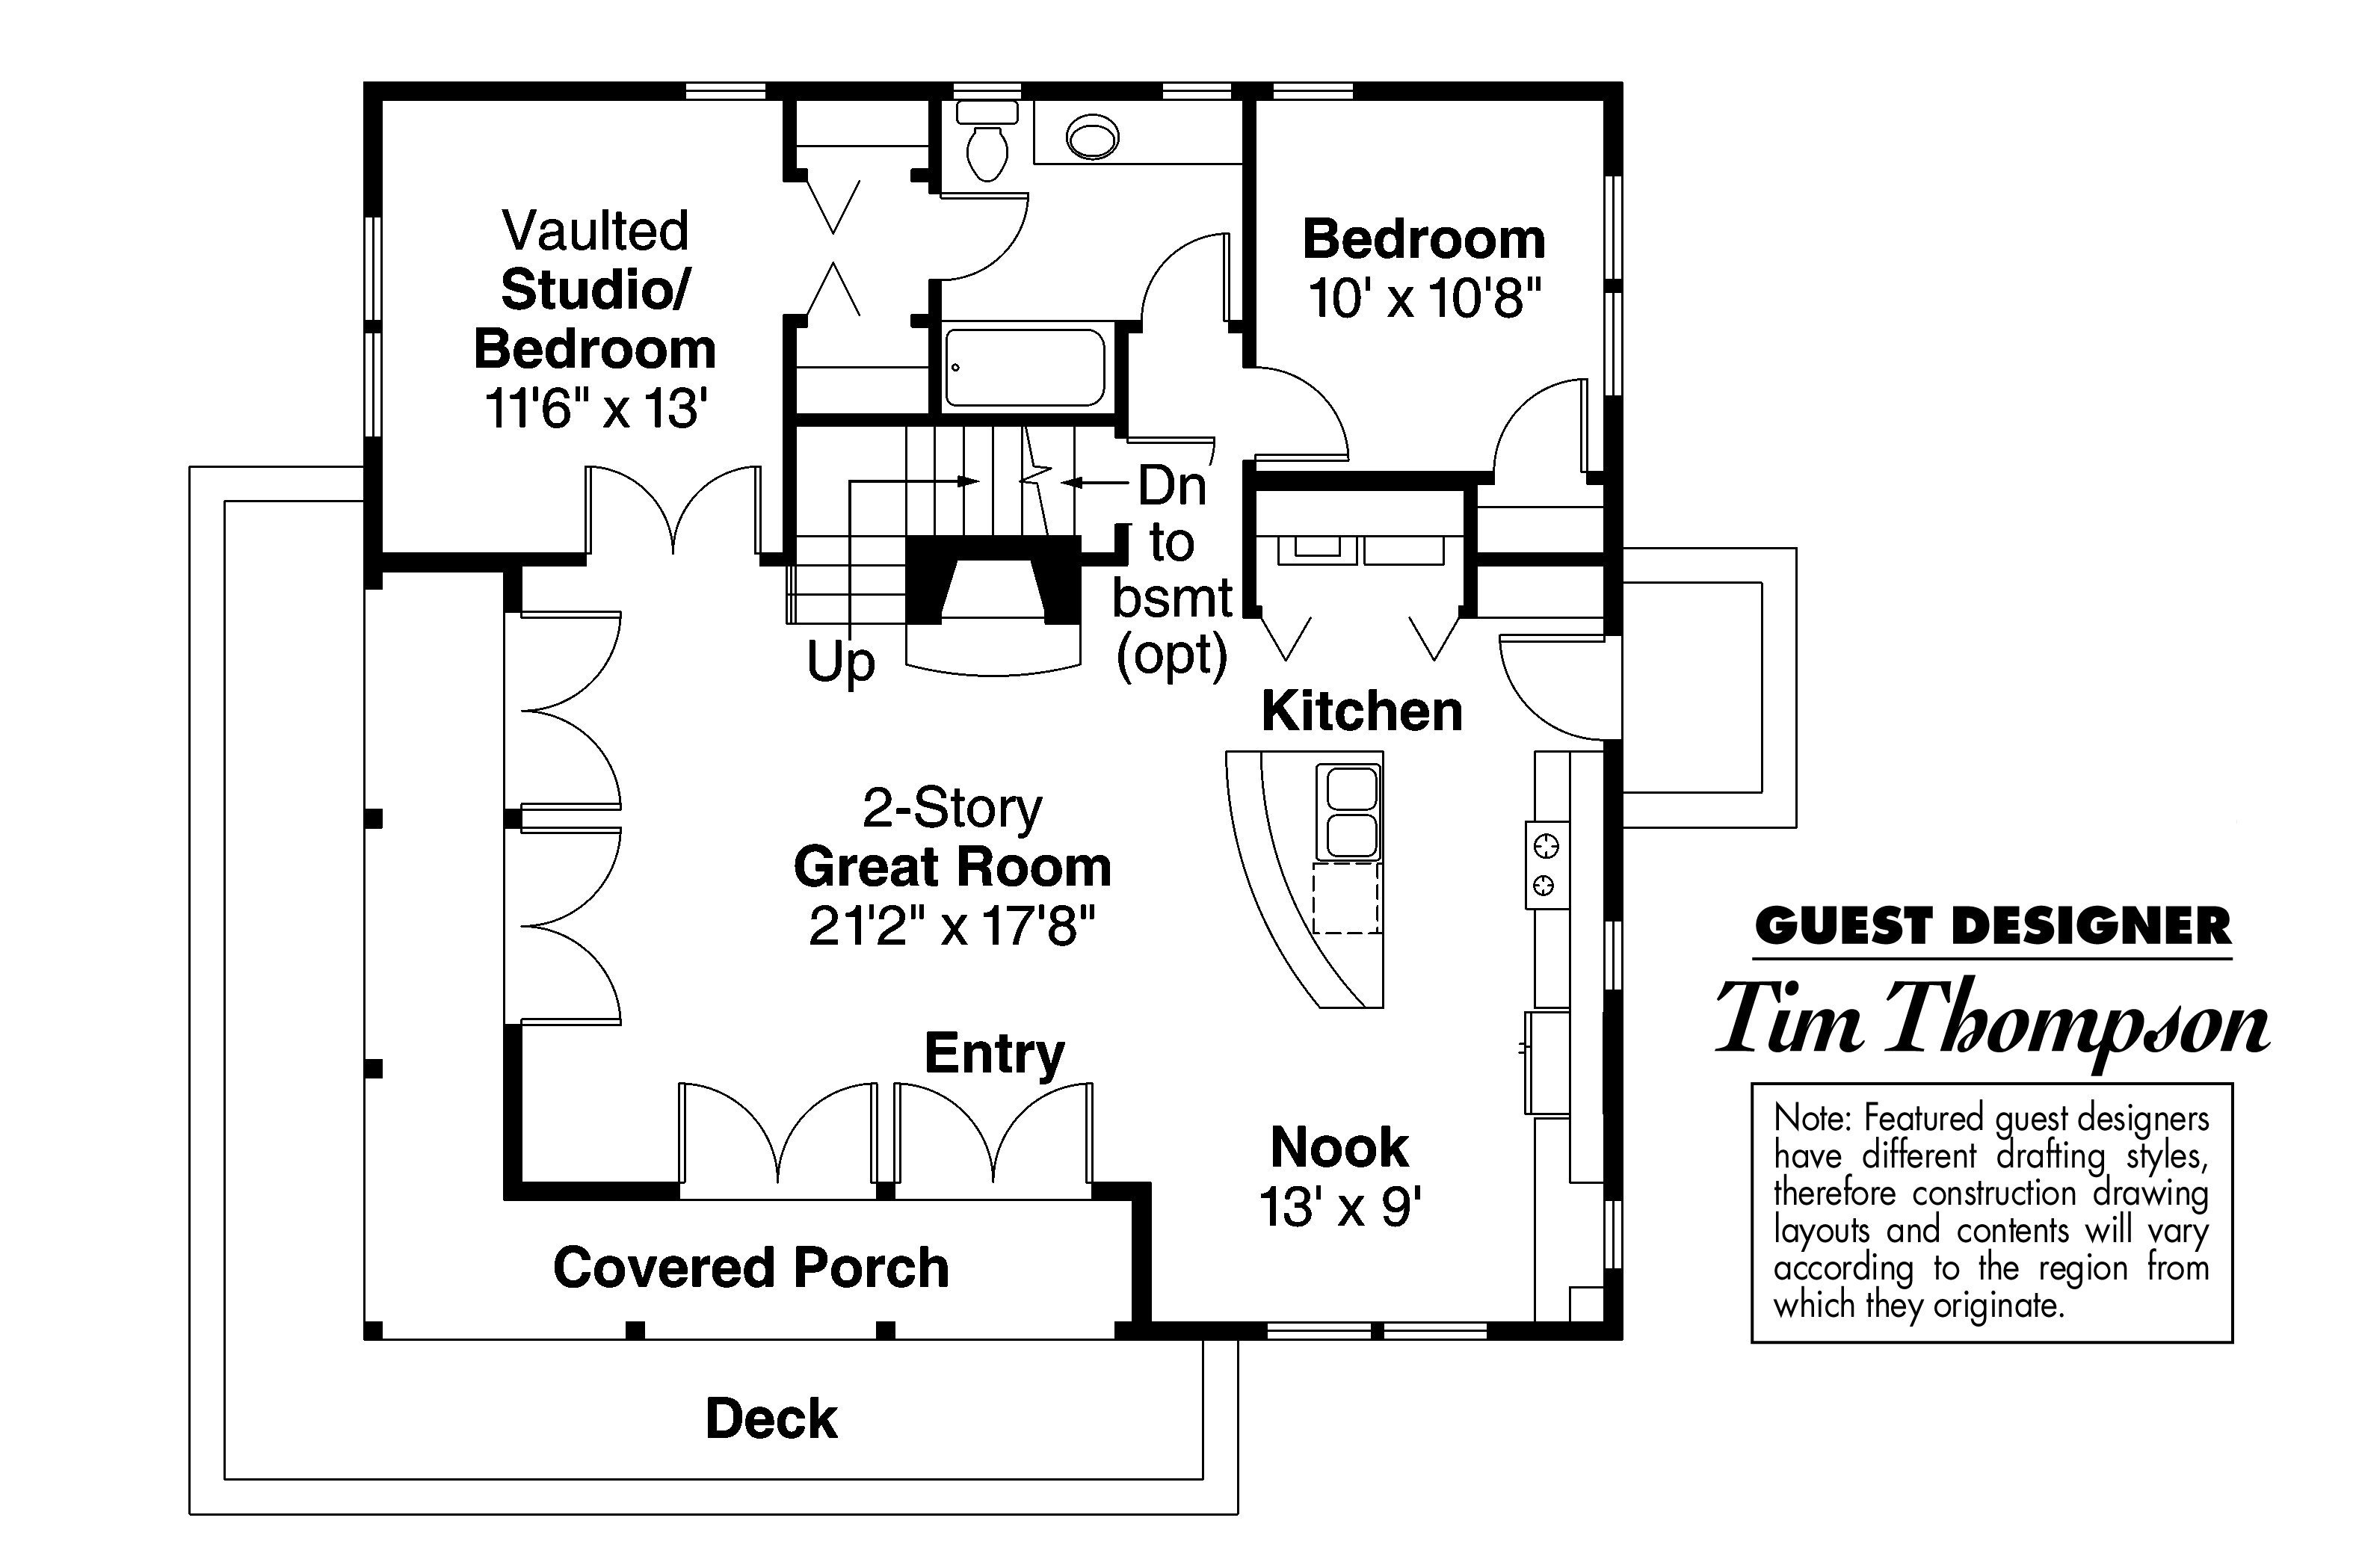 Best Ranch Style Floor Plans Ideas House Sun Room And Open Plan 3 29c18eefbc201803 further Formal Plan With Angled Garage furthermore Dover afb base housing floor plans besides 85aa77529879da05 House Floor Plans With Dimensions House Floor Plans With No Formal Dining Room in addition 873b06d9585be39e Old English Cottage House Plans English Cottage Floor Plans. on small home plans country style